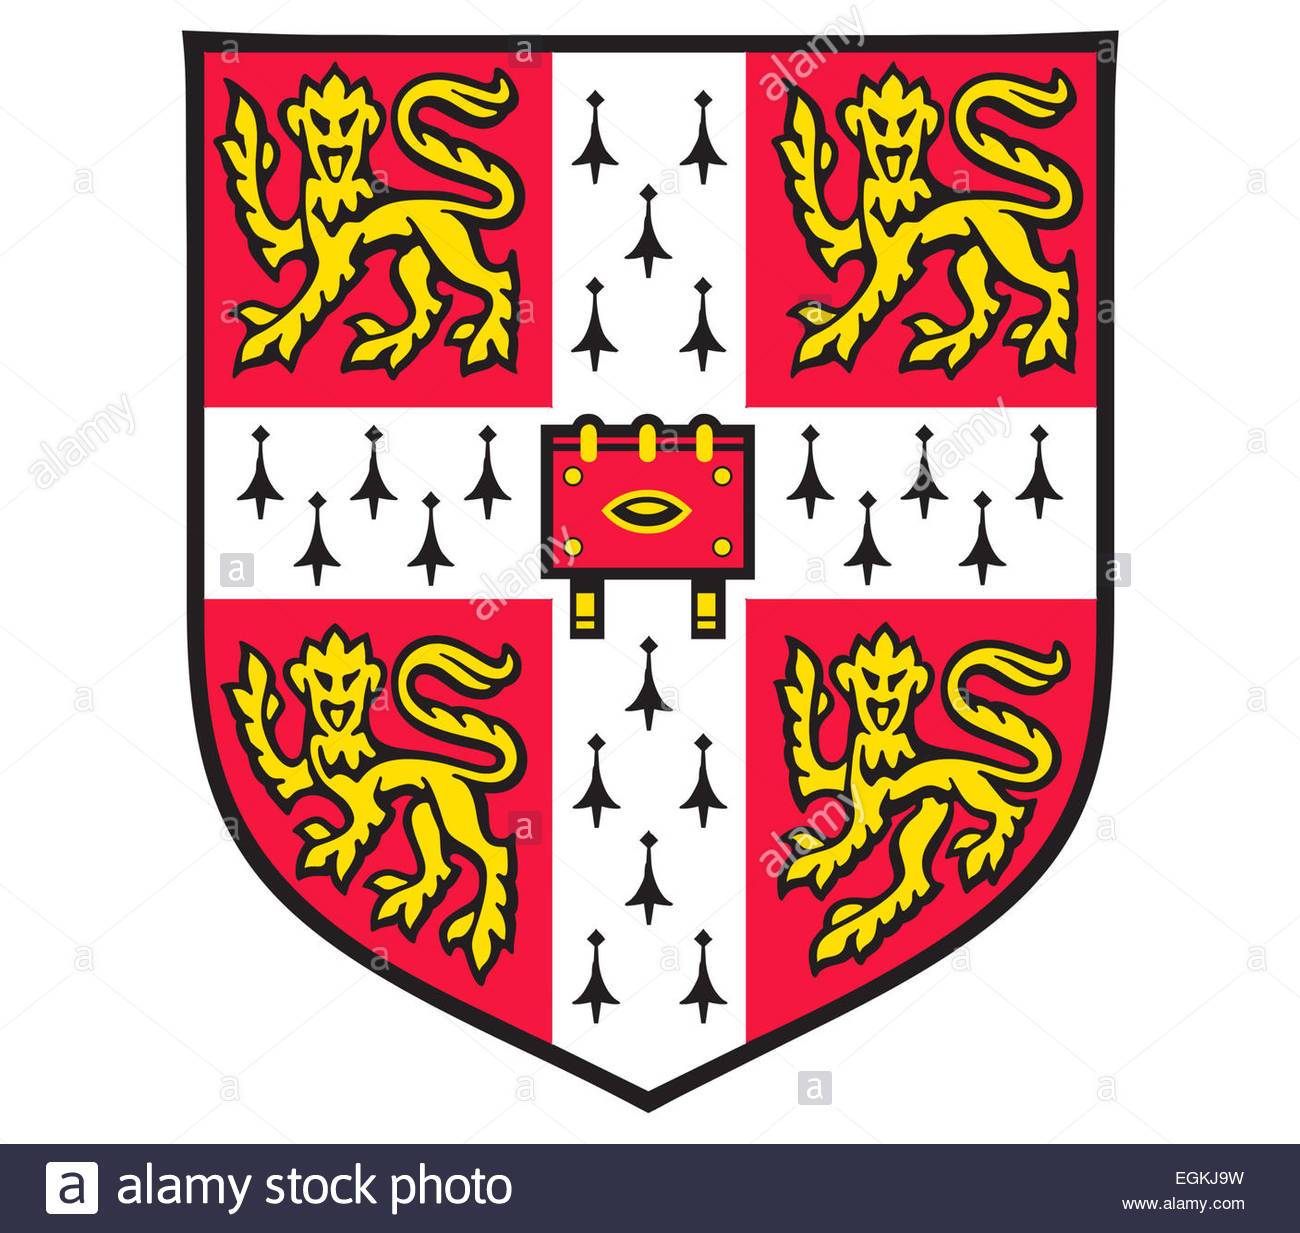 Cambridge University logo icon symbol Stock Photo